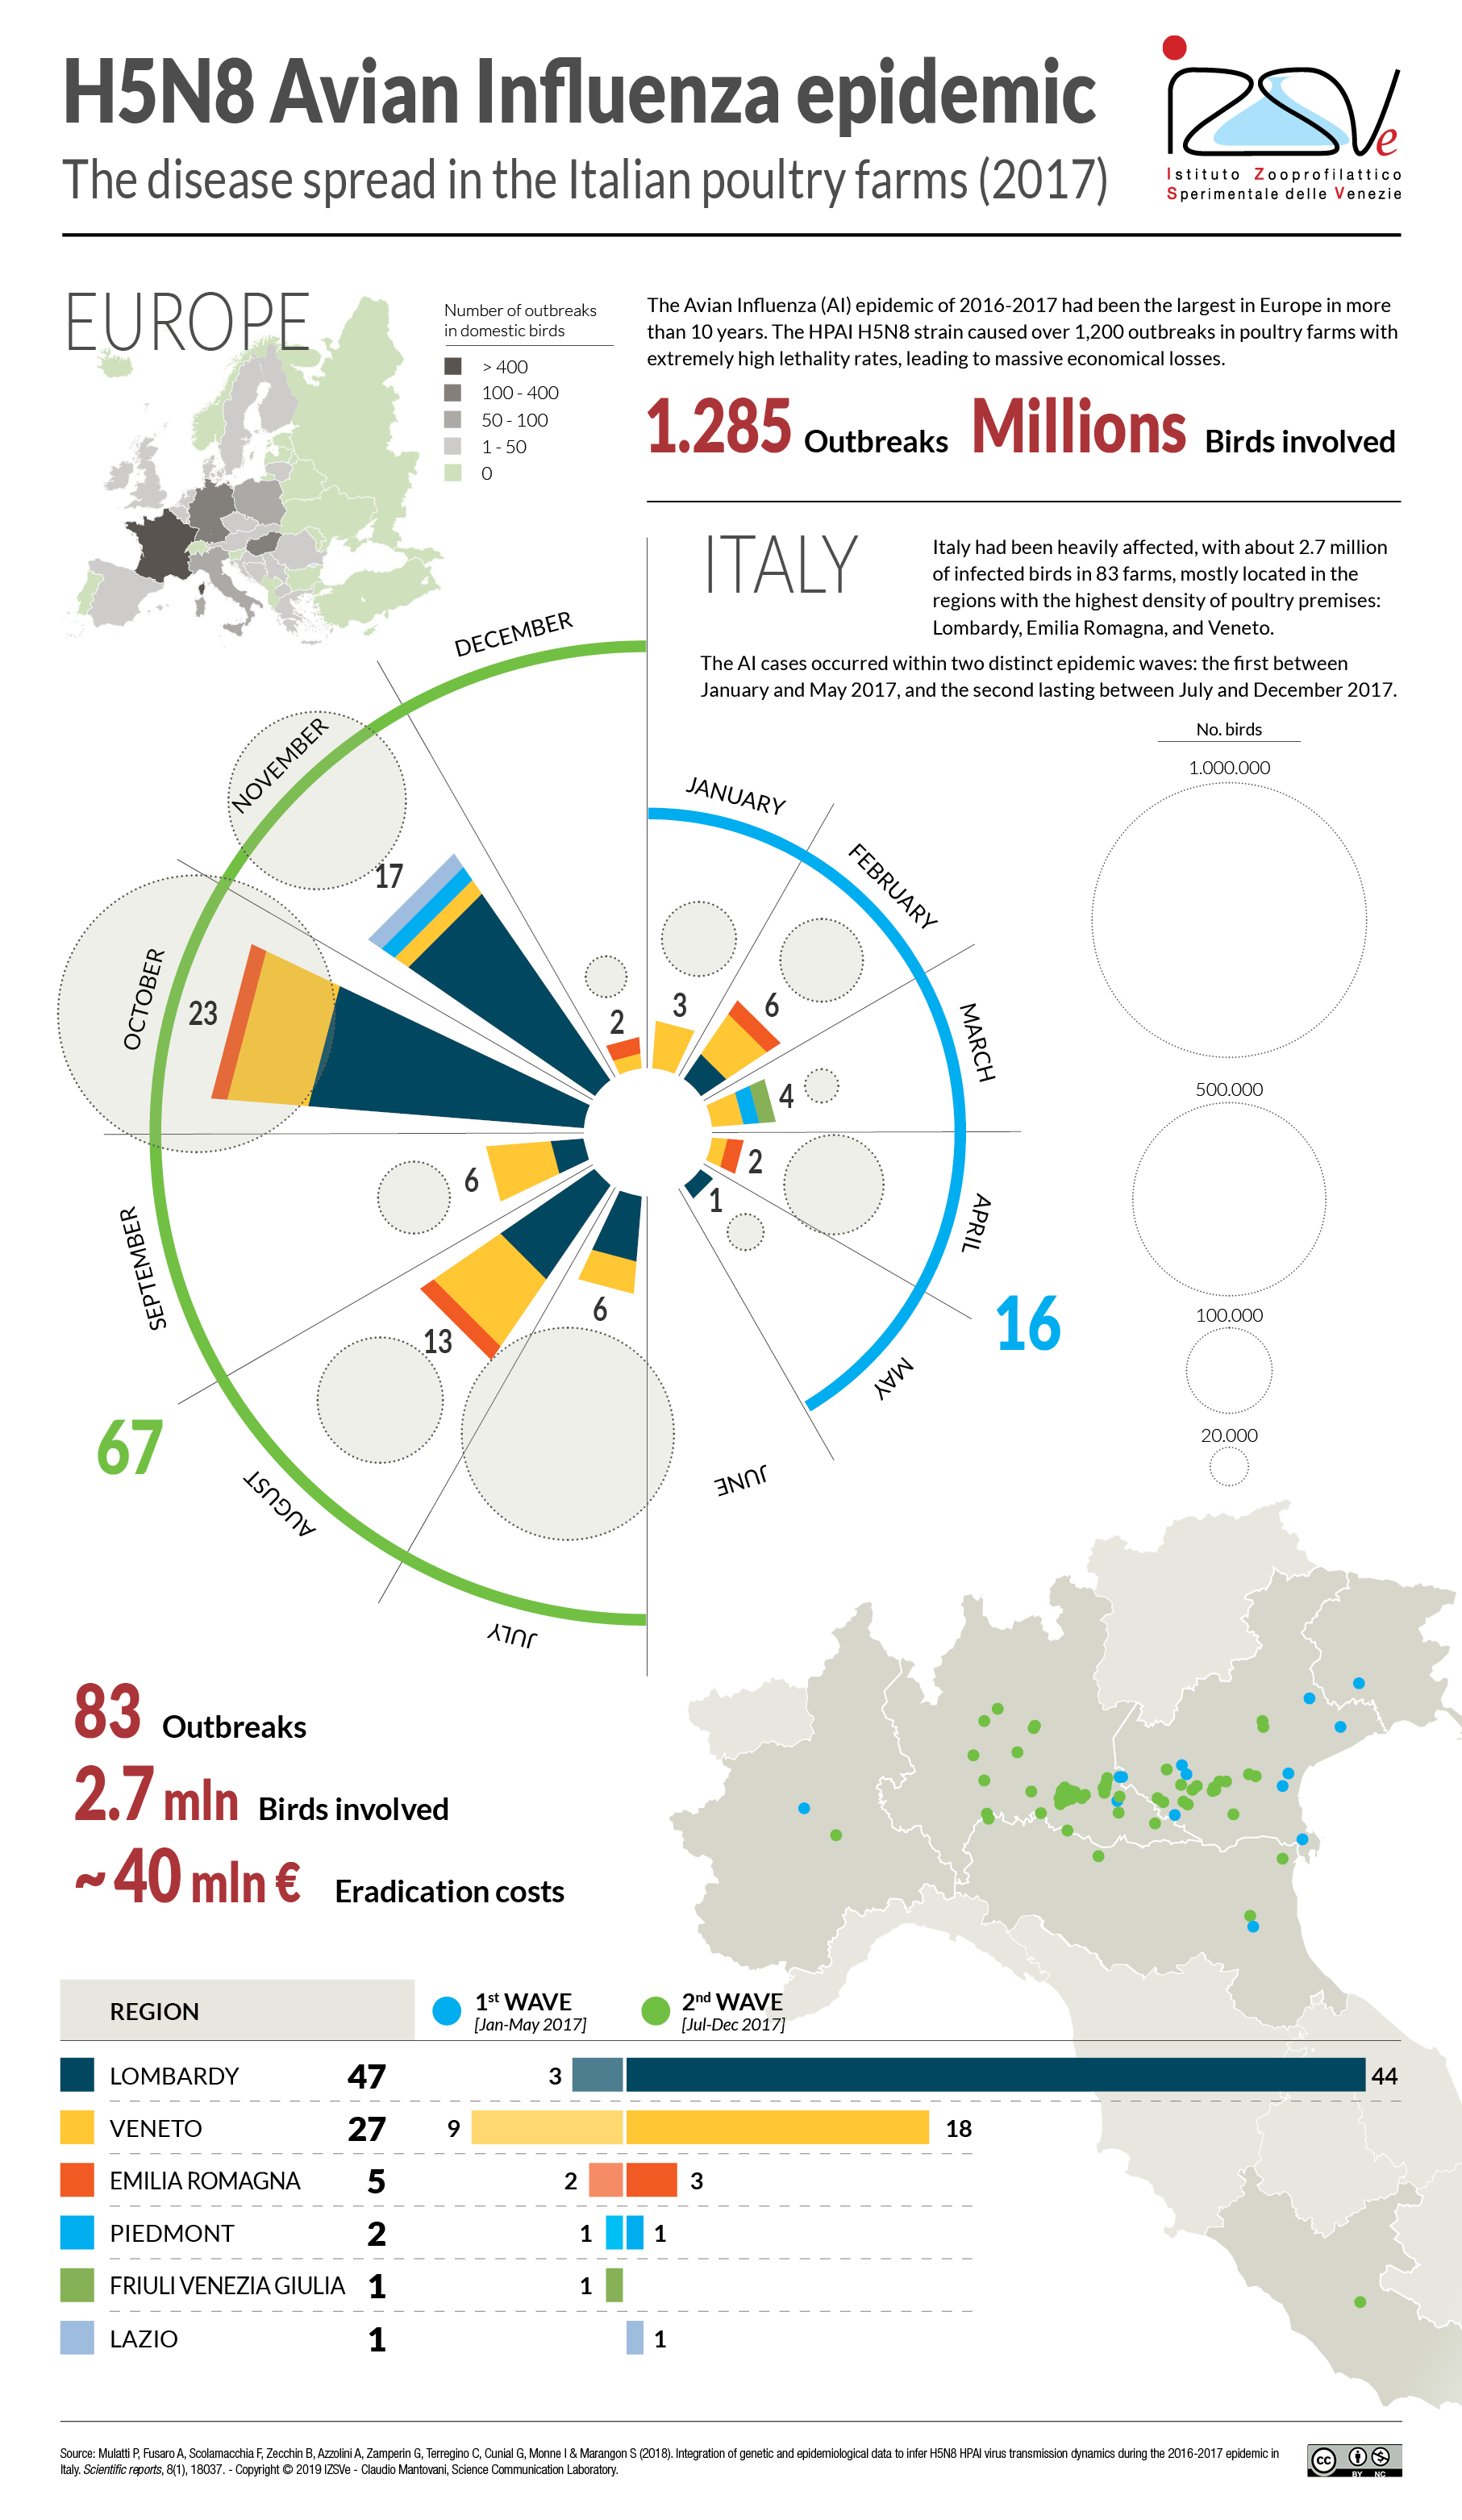 Integration of genetic and epidemiological data during the 2016-2017 avian influenza epidemic in Italy | Infographic